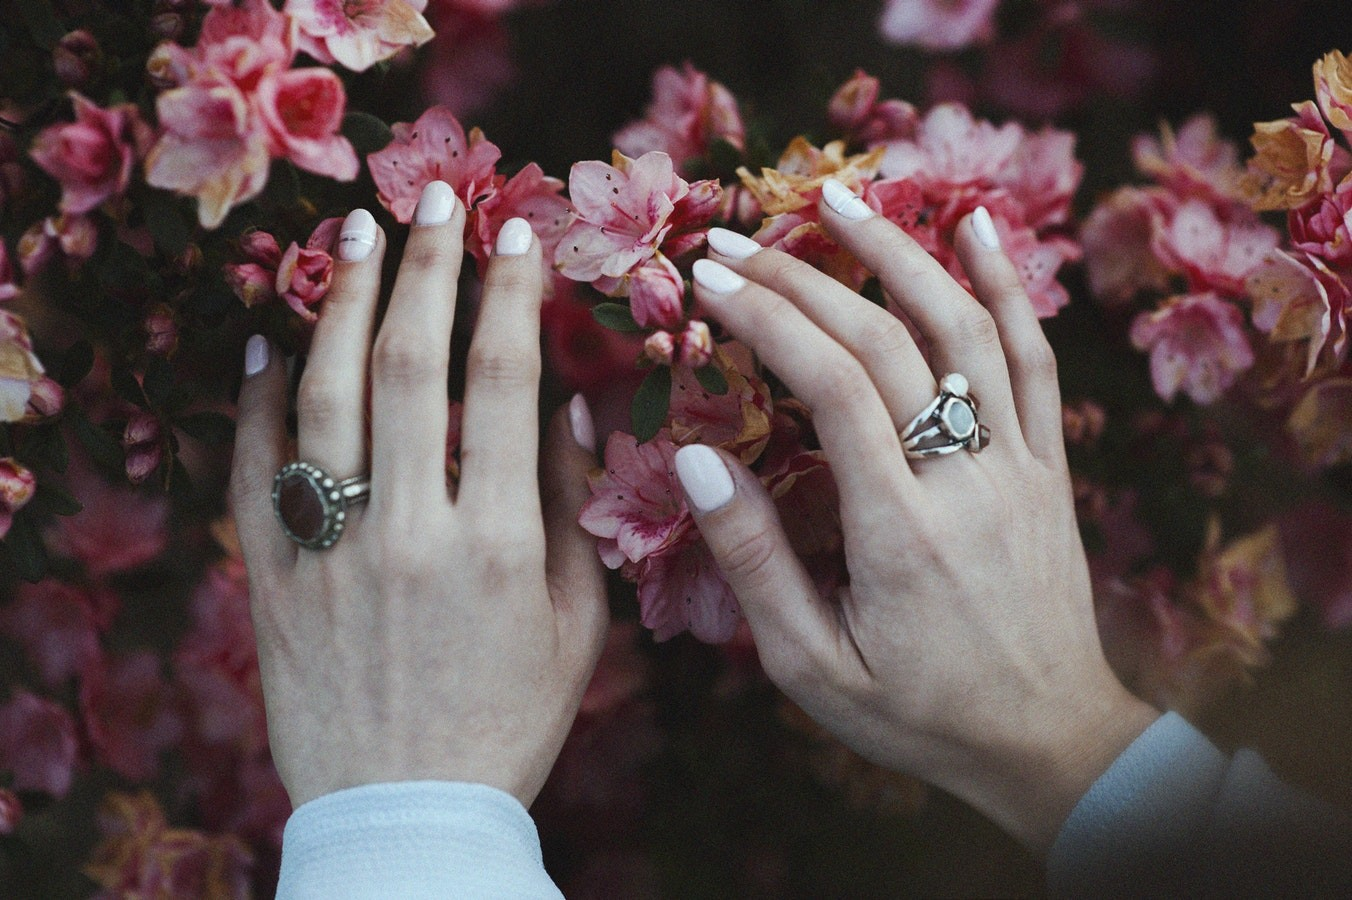 Lady's hands with white polish and rings place on a bed of pink flowers